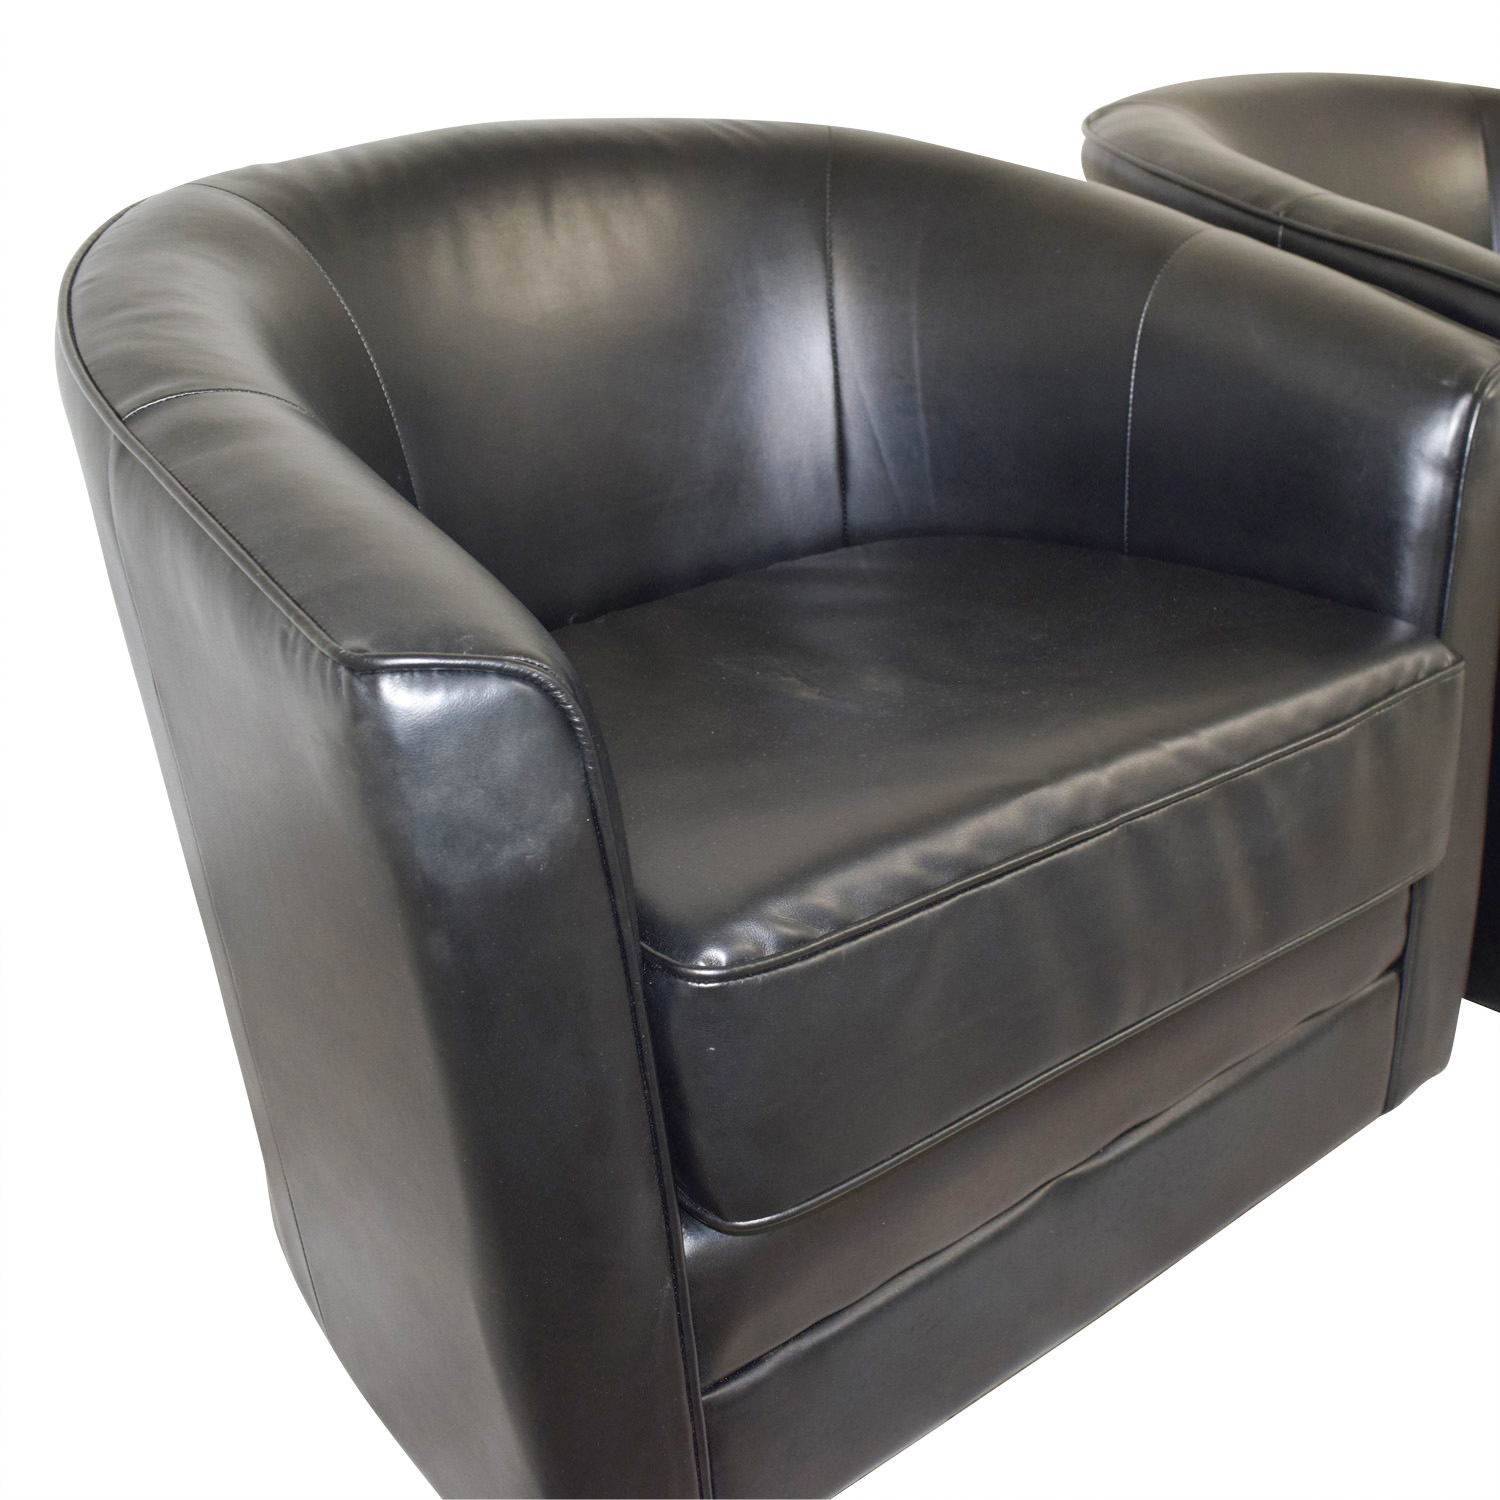 85 Off Bob S Furniture Bob S Furniture Black Leather